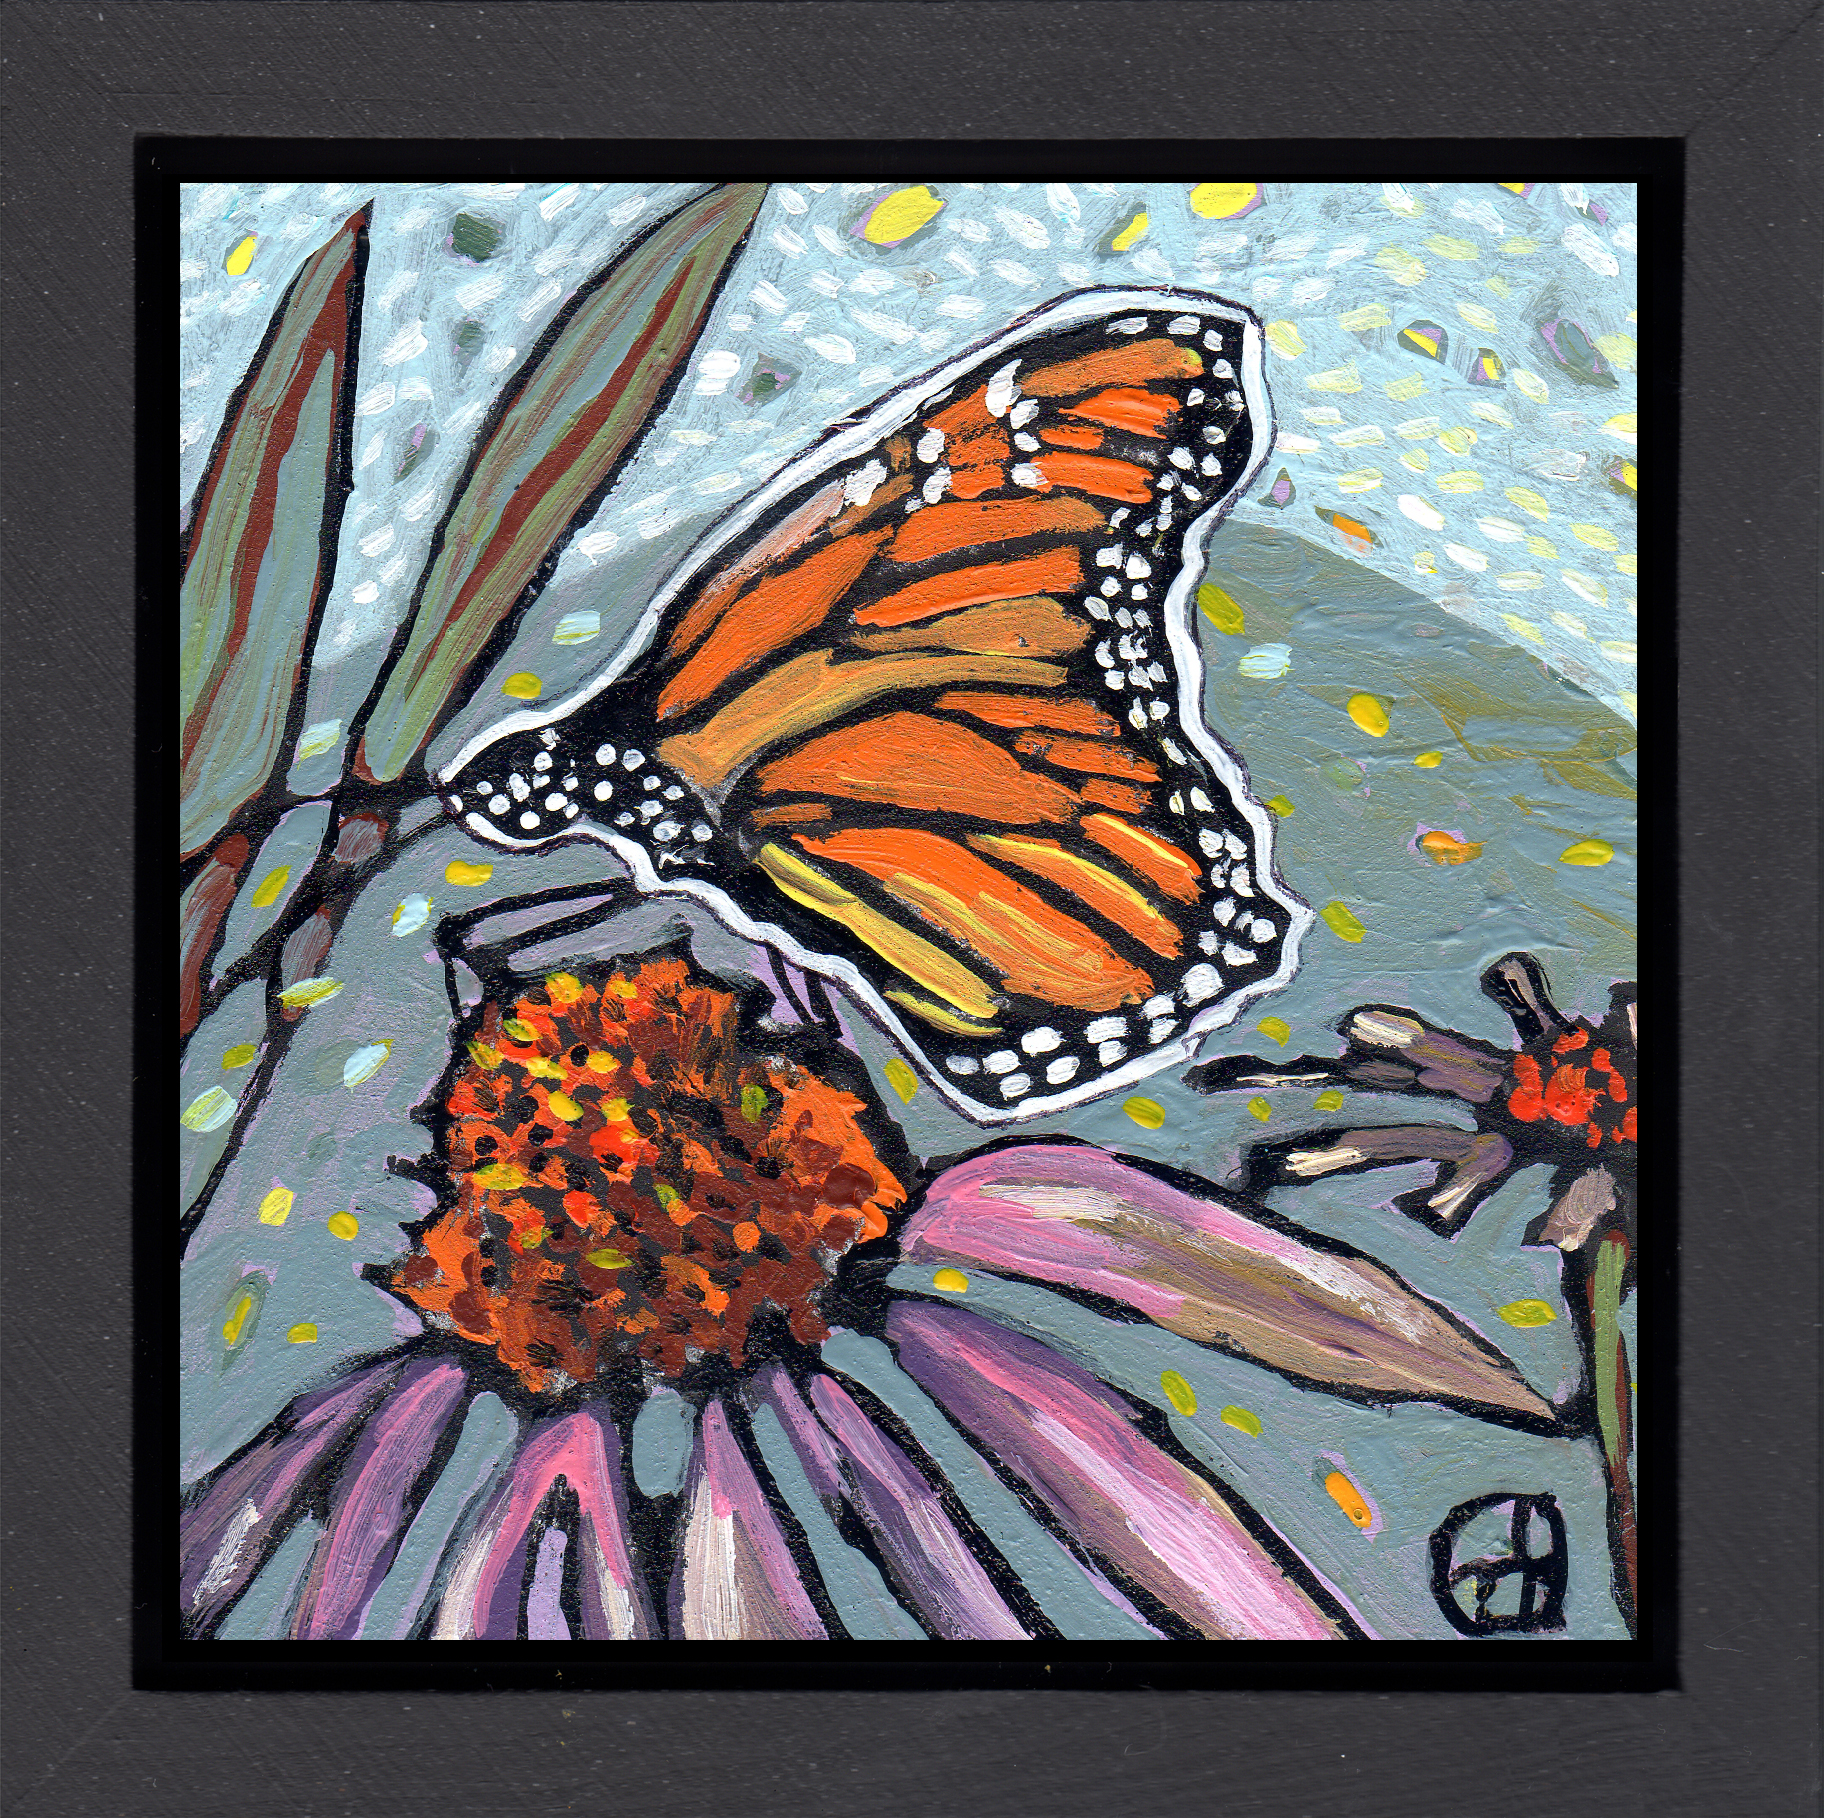 Sold.  Based on a beautiful photo by Sarah M.  acrylic on wood  6.5 x 6.5 inches, 1.5 inch deep wood frame